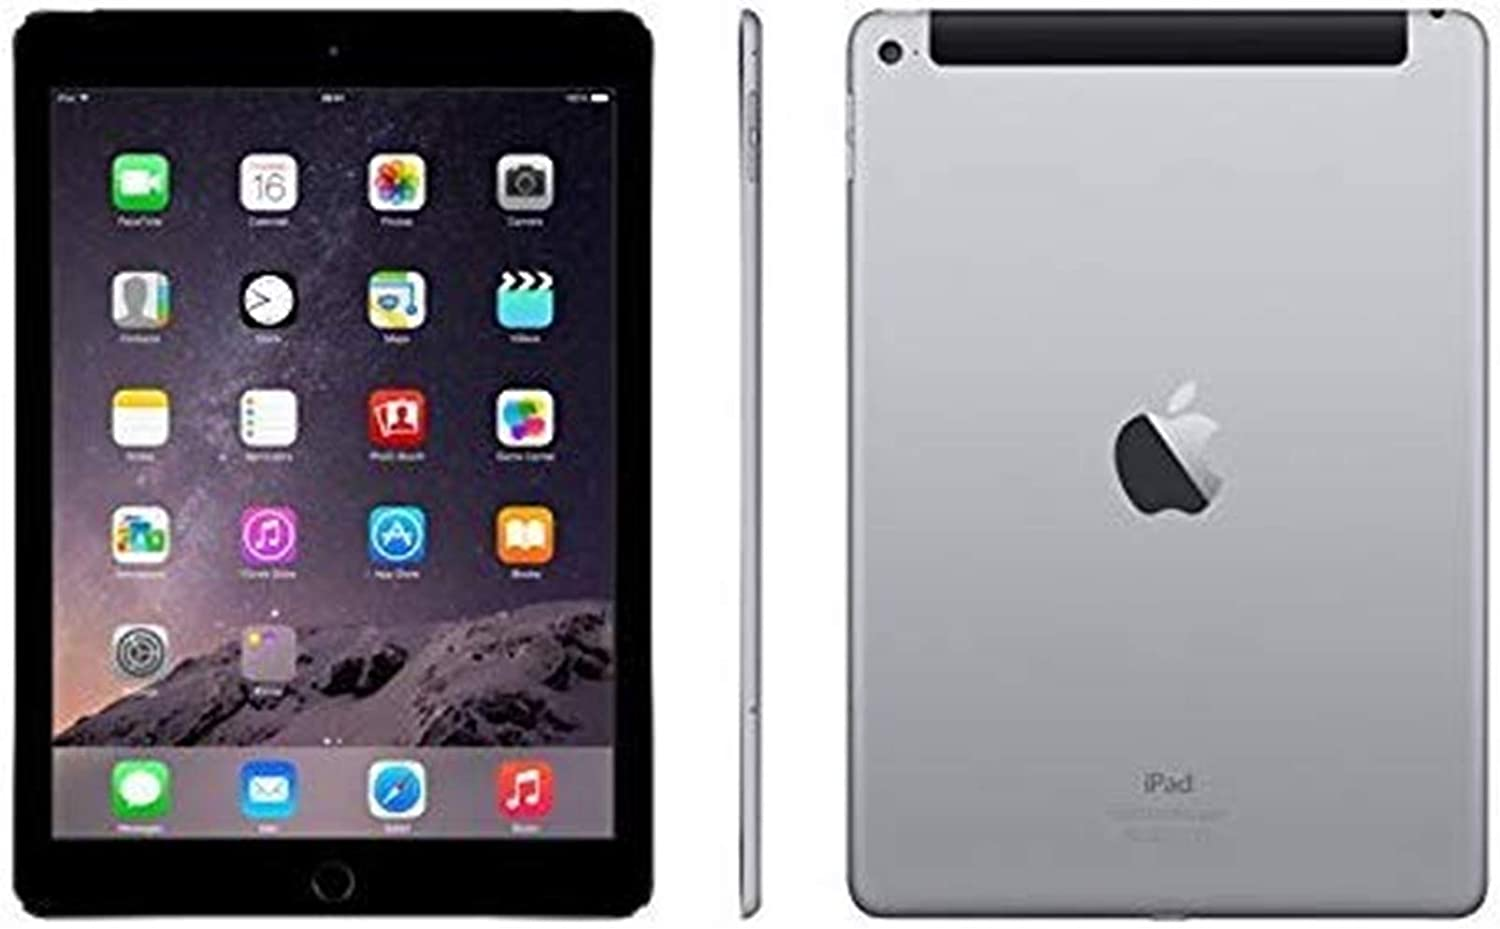 Apple Ipad Air 2 64GB Factory Unlocked (Space Gray, Wi-Fi + Cellular 4G) Newest Version (Renewed)